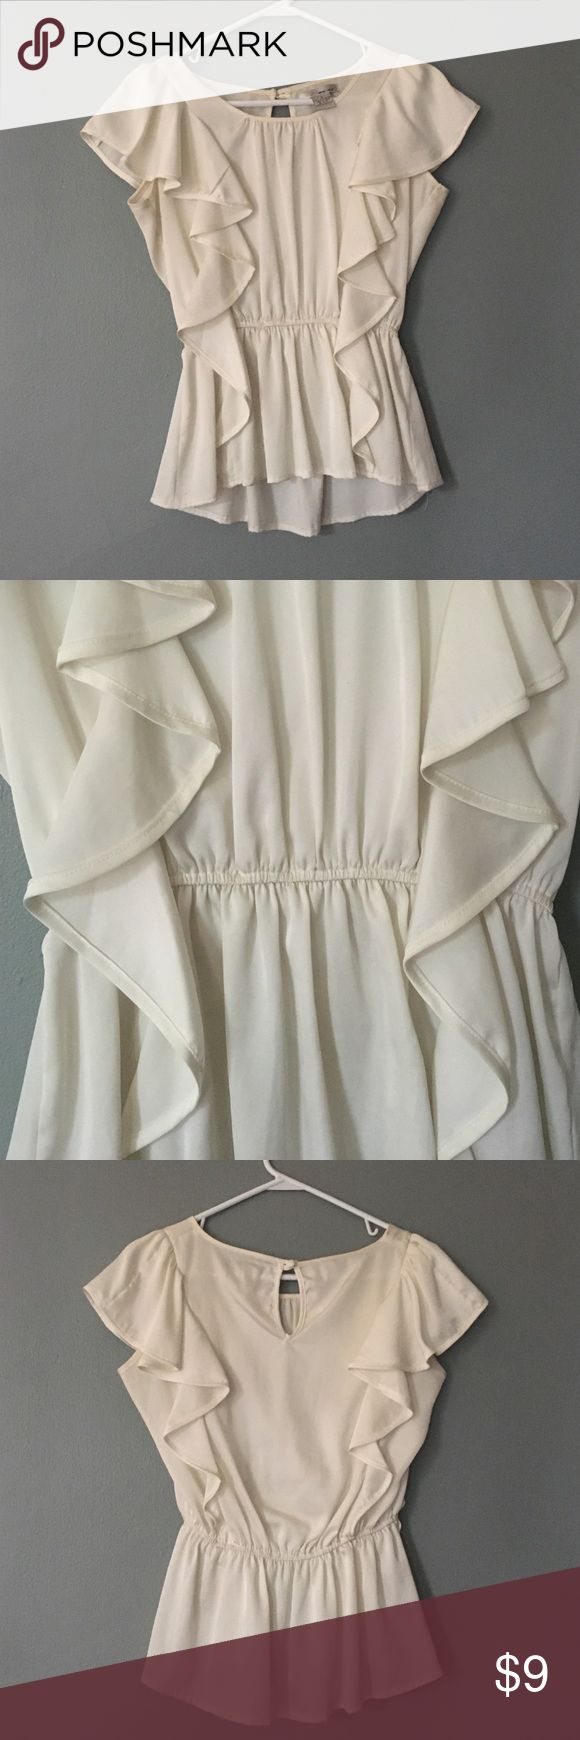 Cream short sleeved blouse with ruffles Very versatile top! Cream short sleeved blouse with ruffles and a cinched waist. Tops Blouses